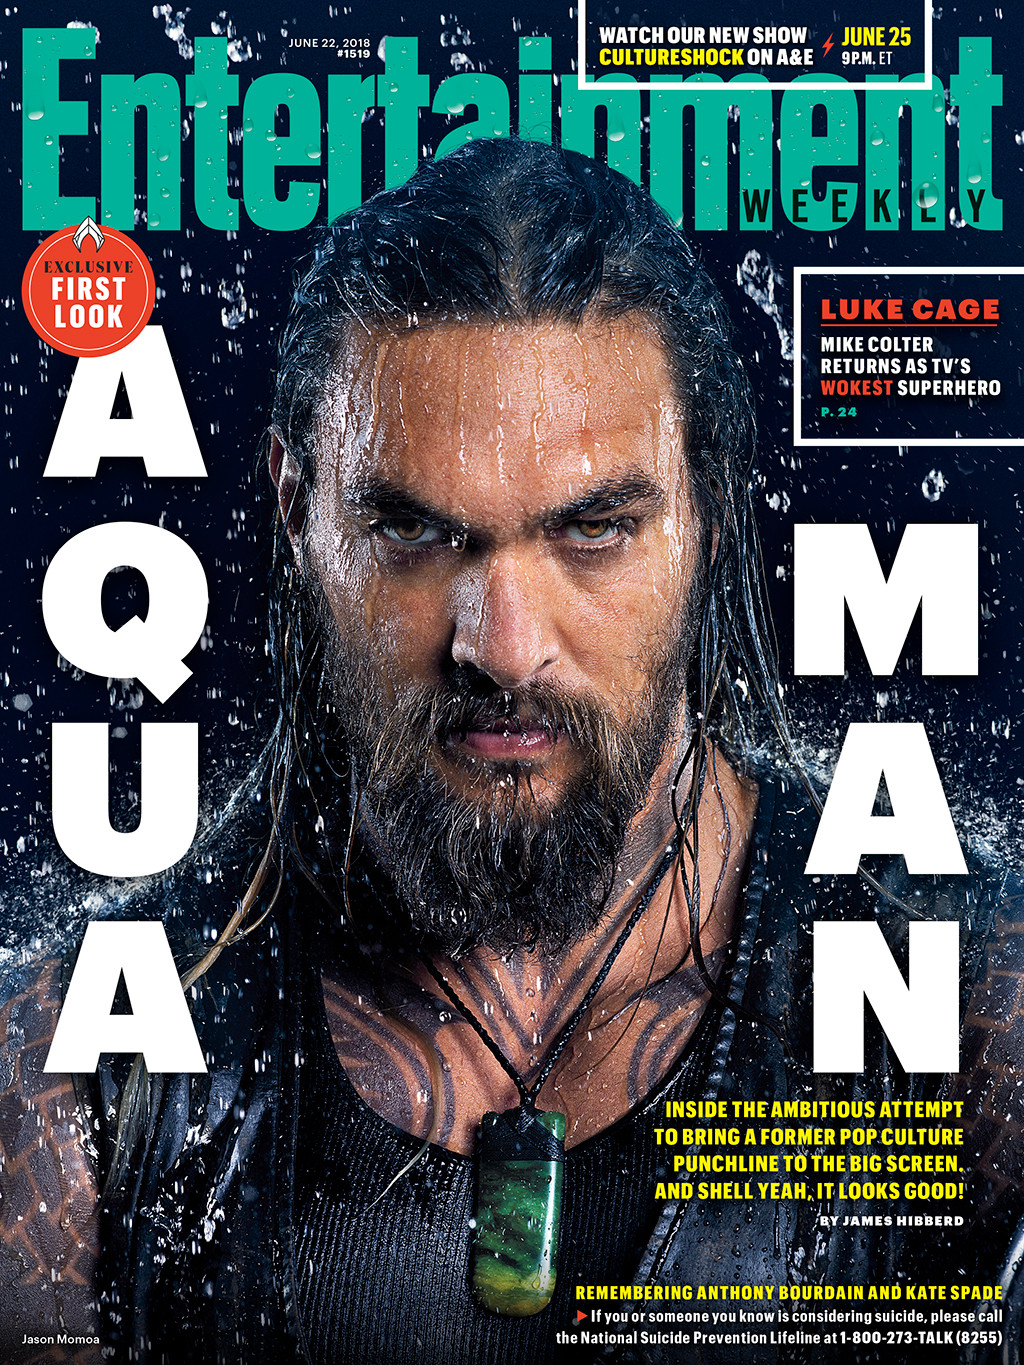 Aquaman, Entertainment Weekly